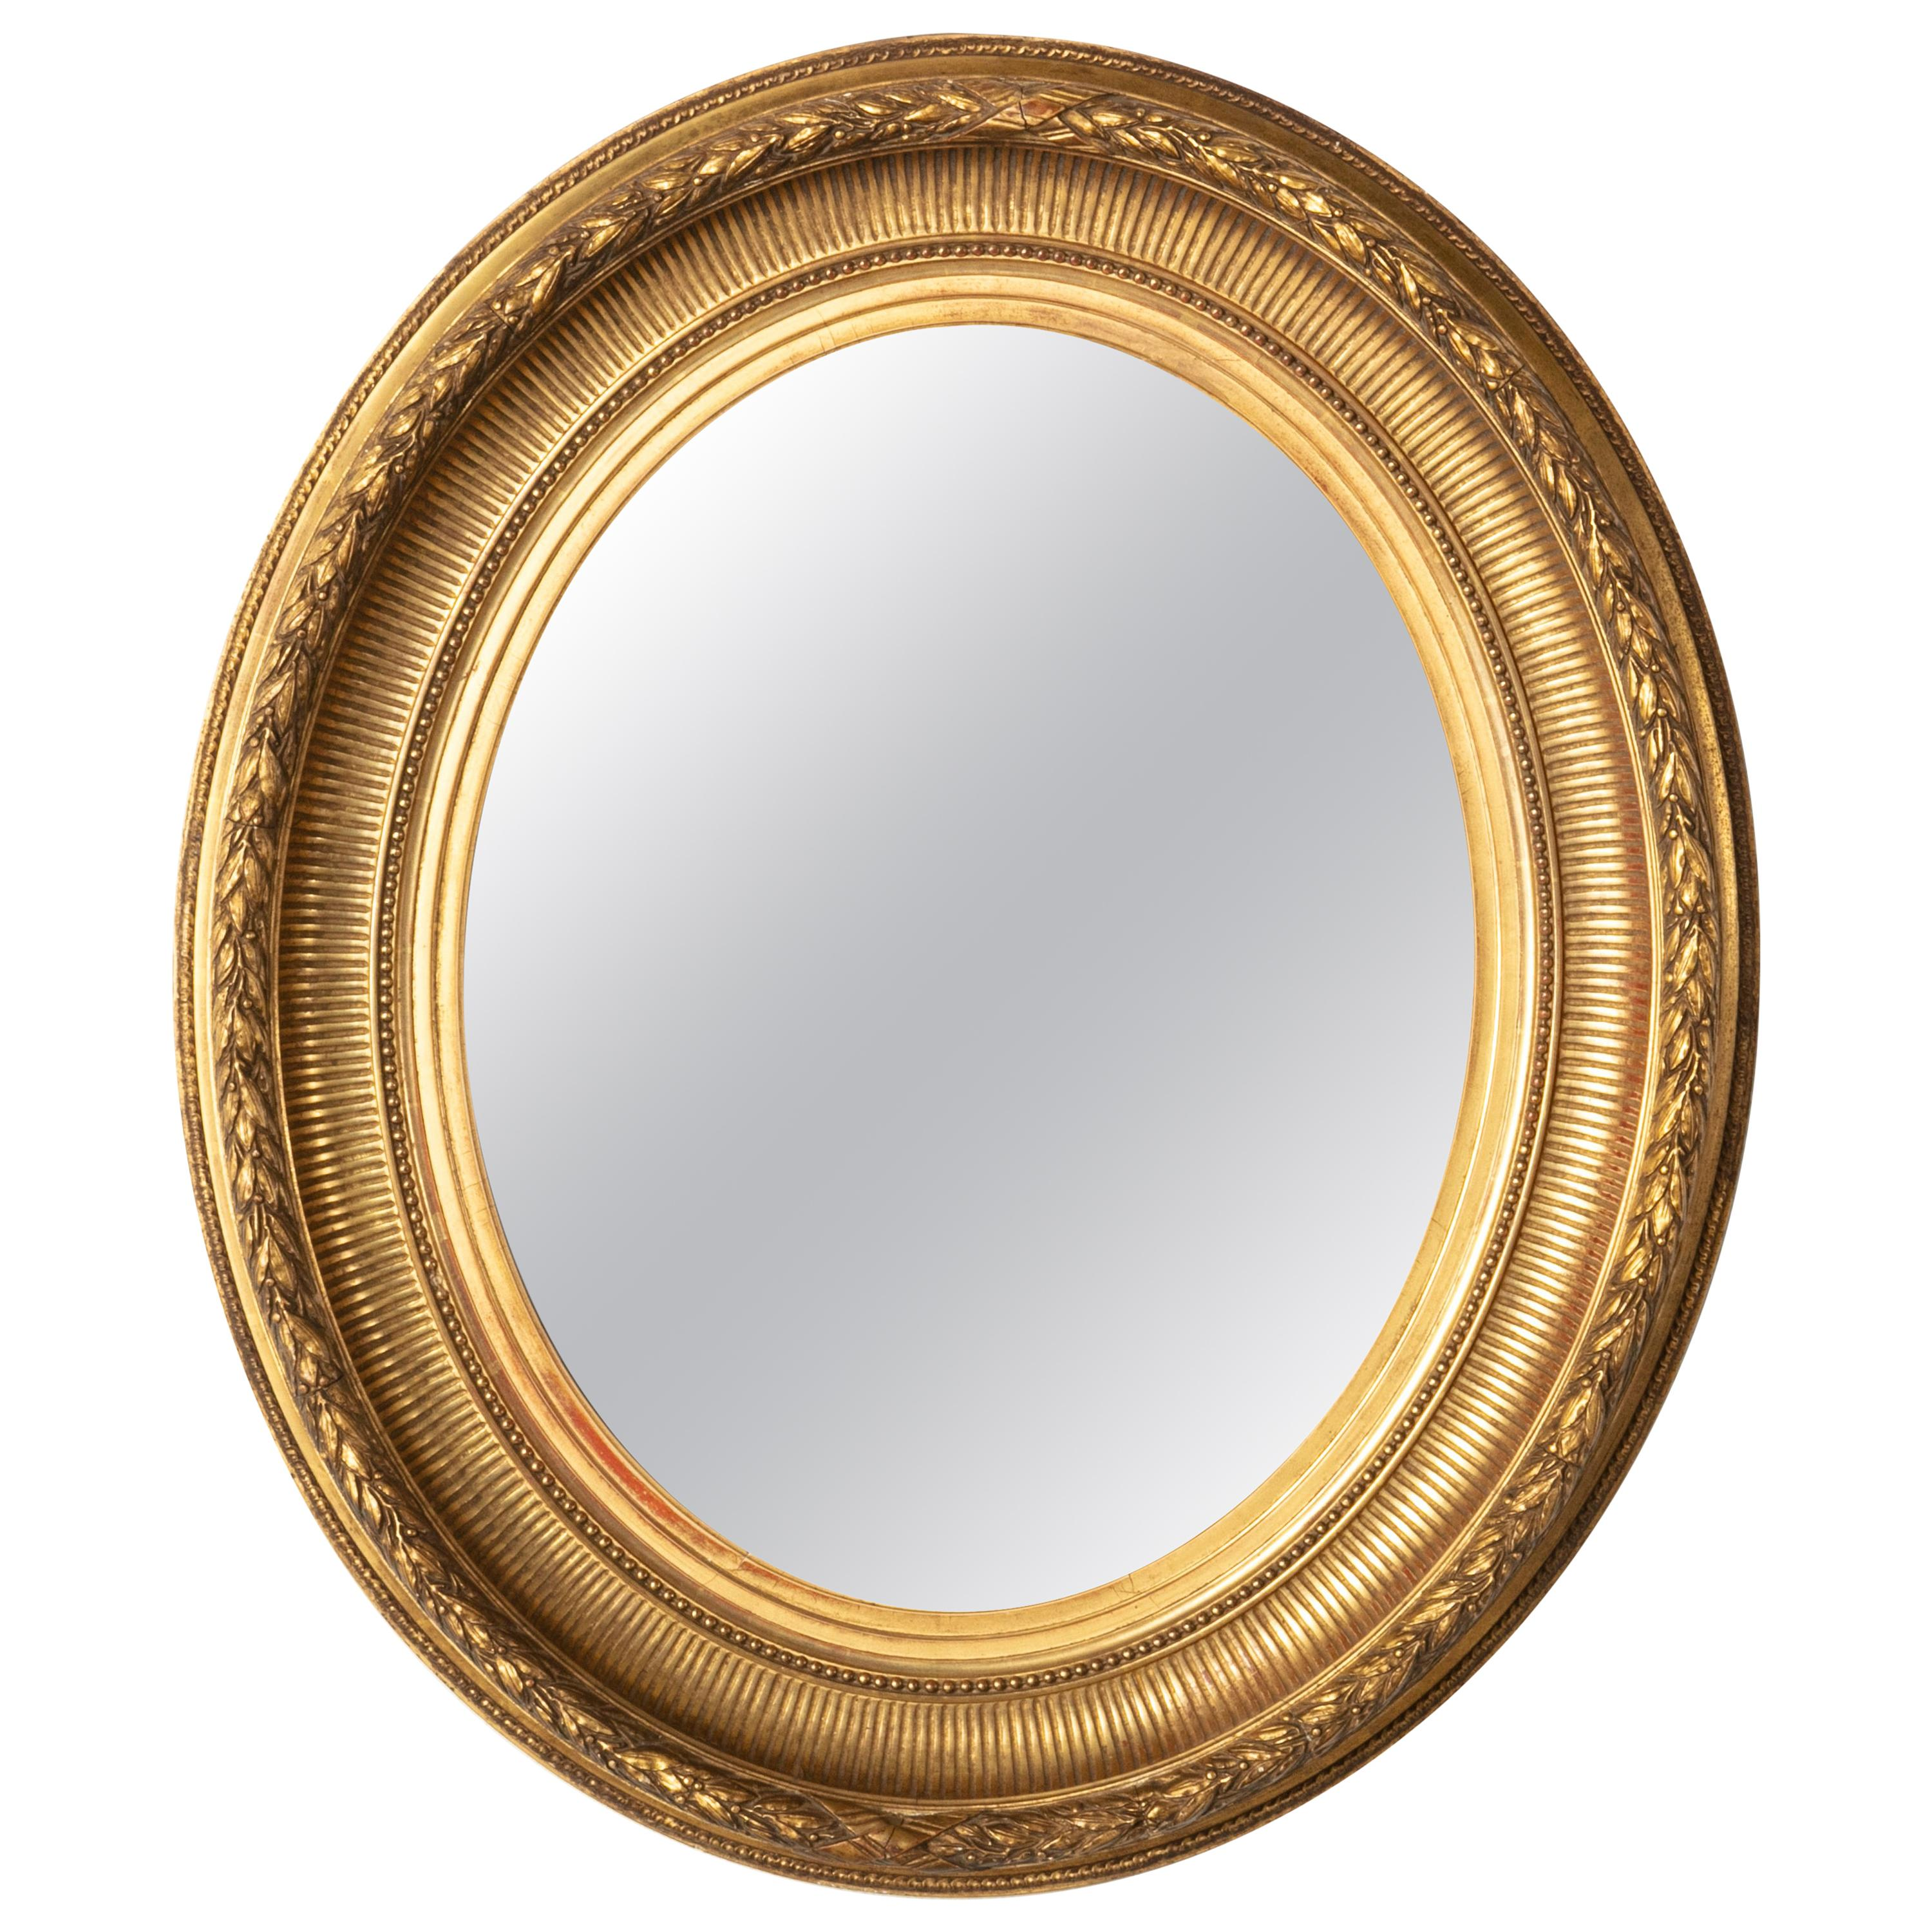 Late 19th Century French Louis XVI Style Oval Giltwood Mirror